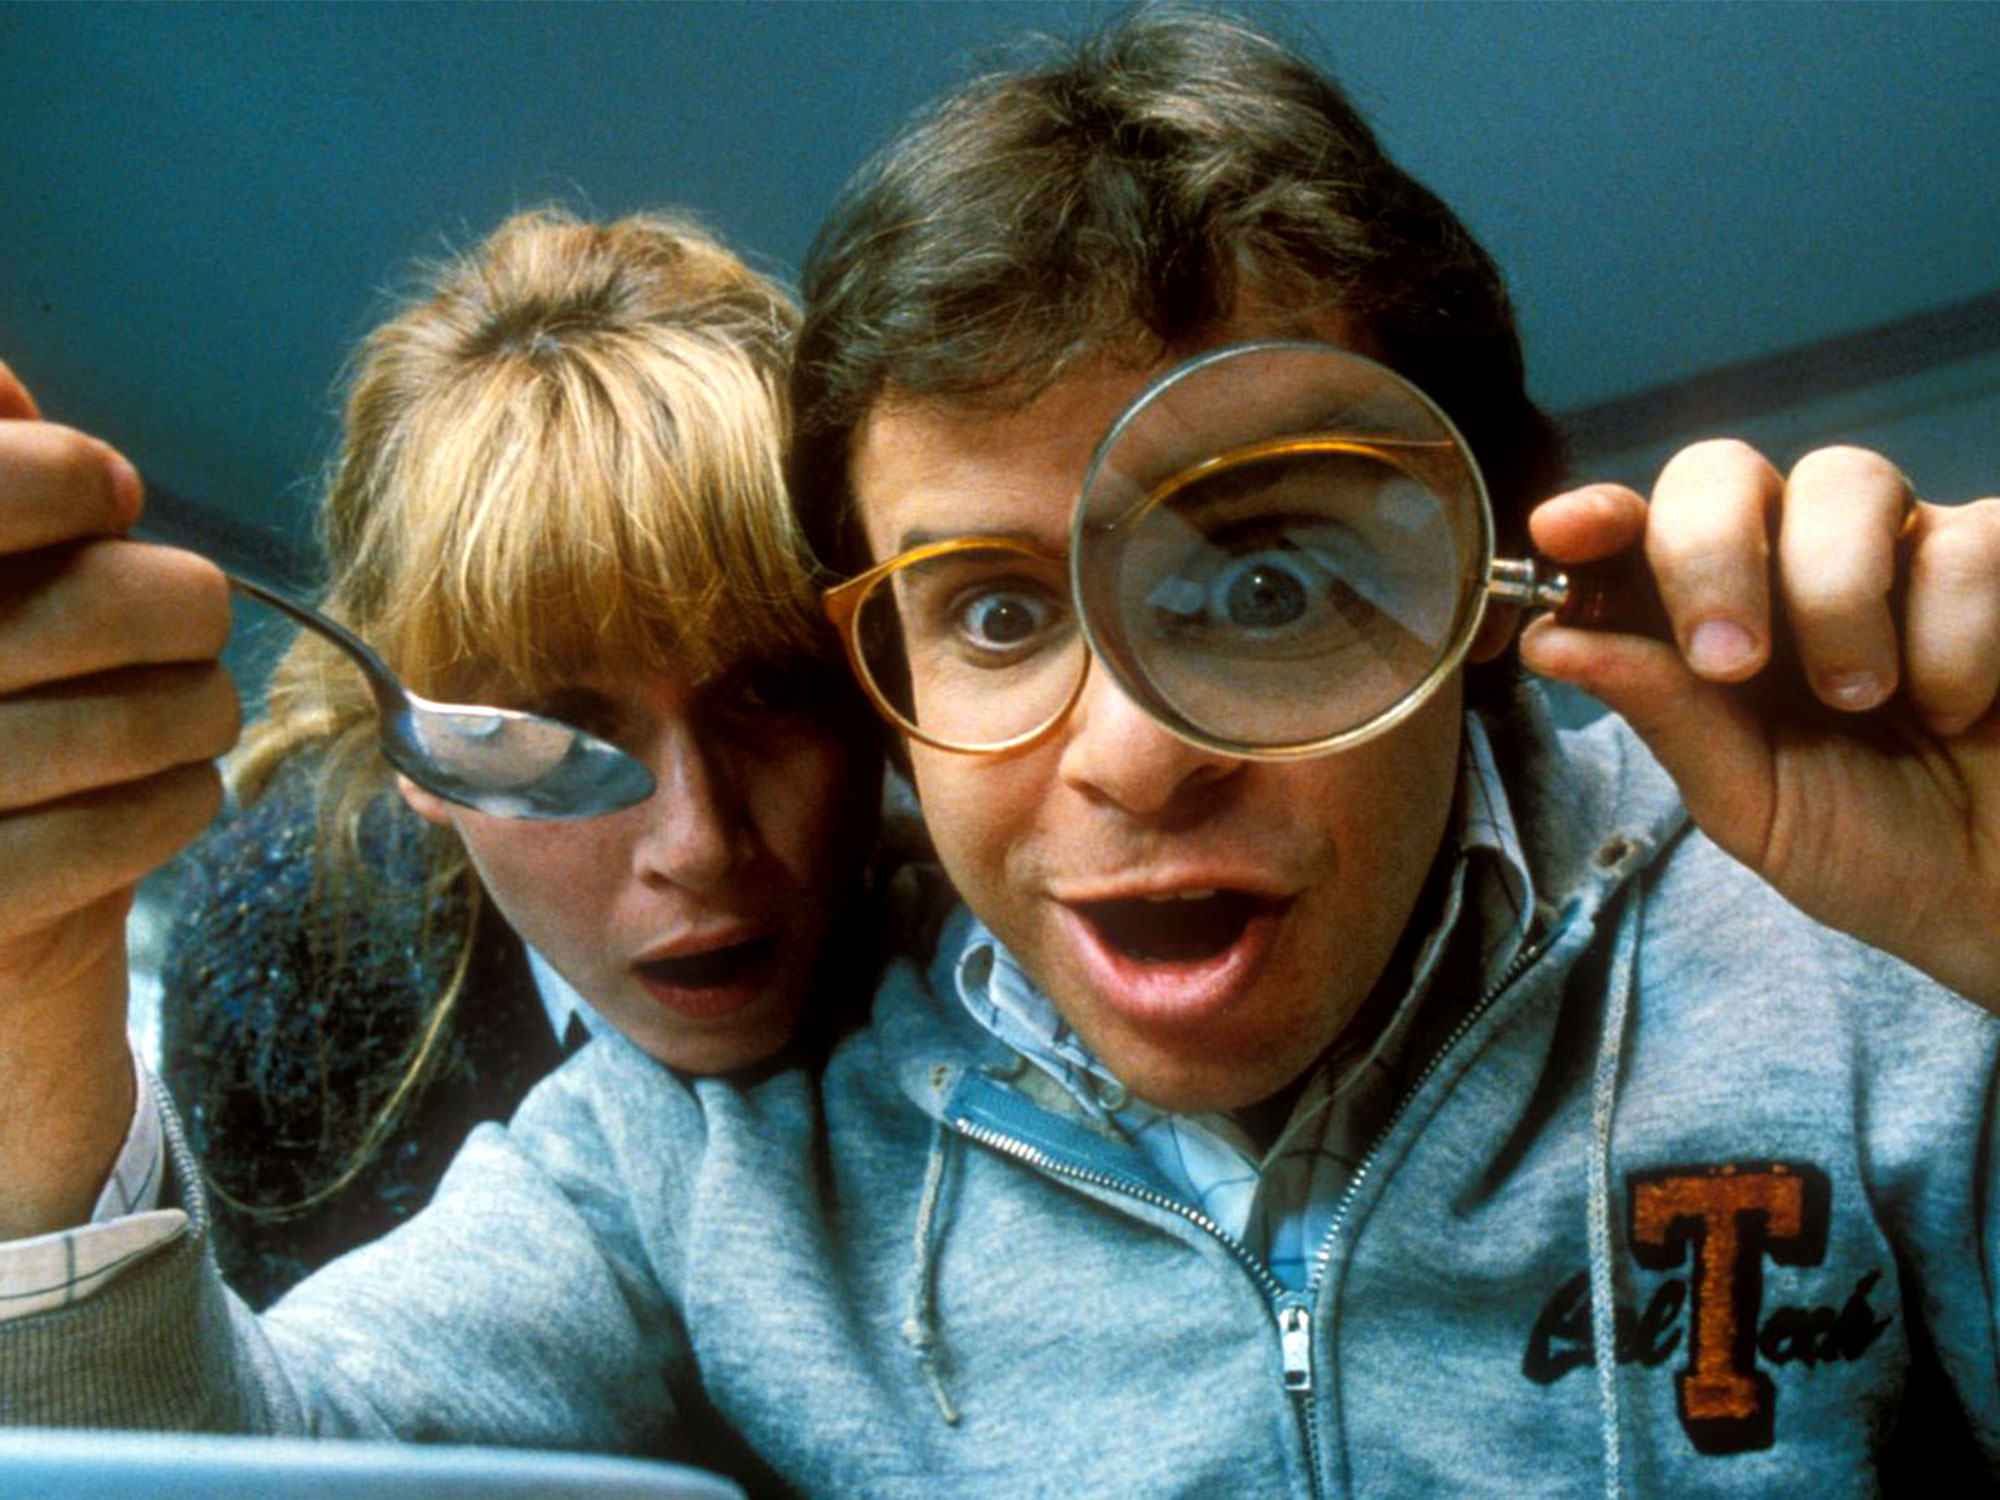 Rick Moranis in Honey, I Shrunk the Kids